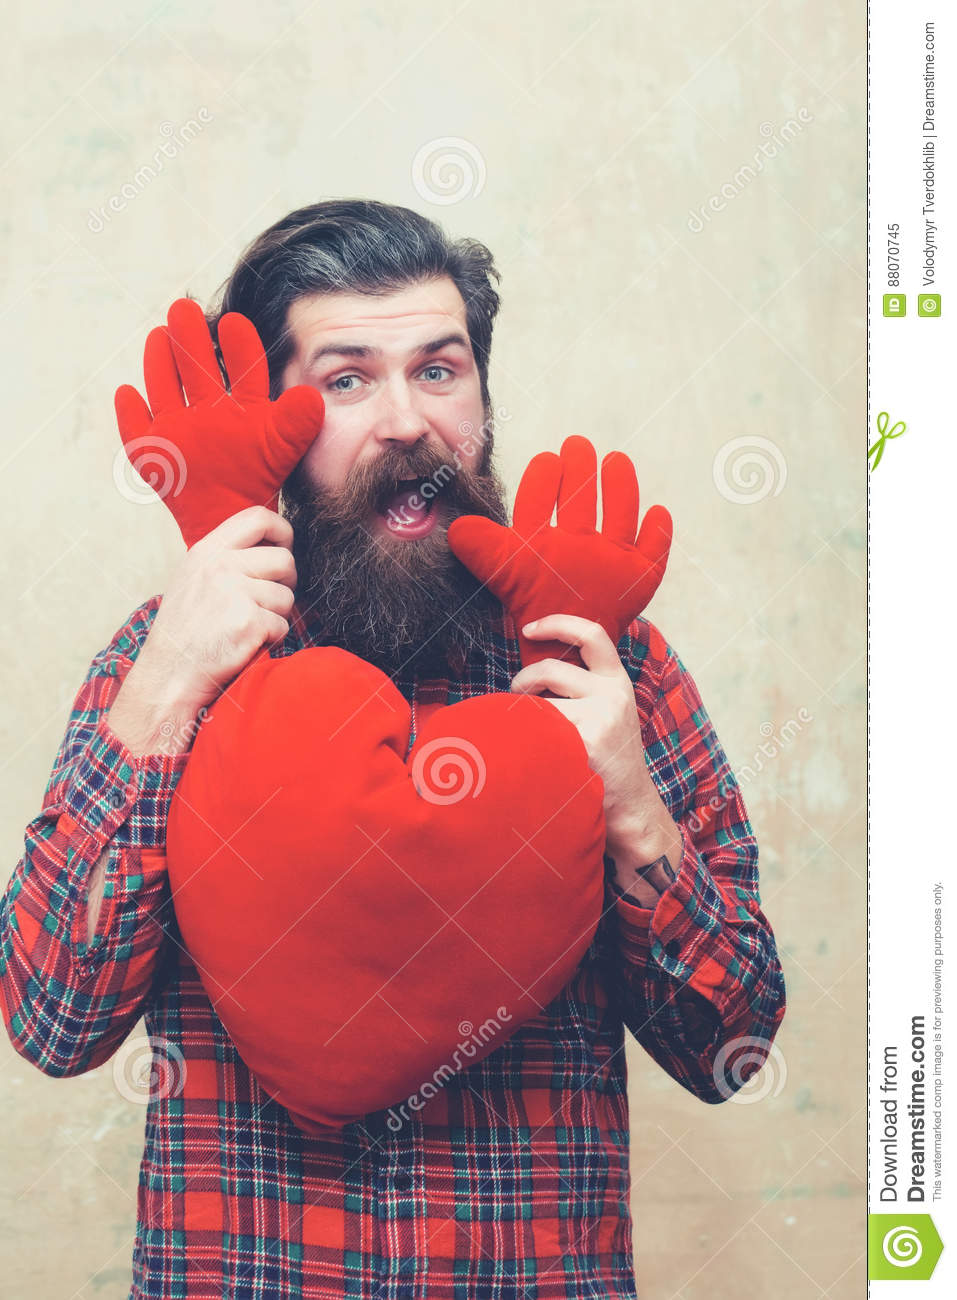 Happy bearded man holding red heart shape toy with hands